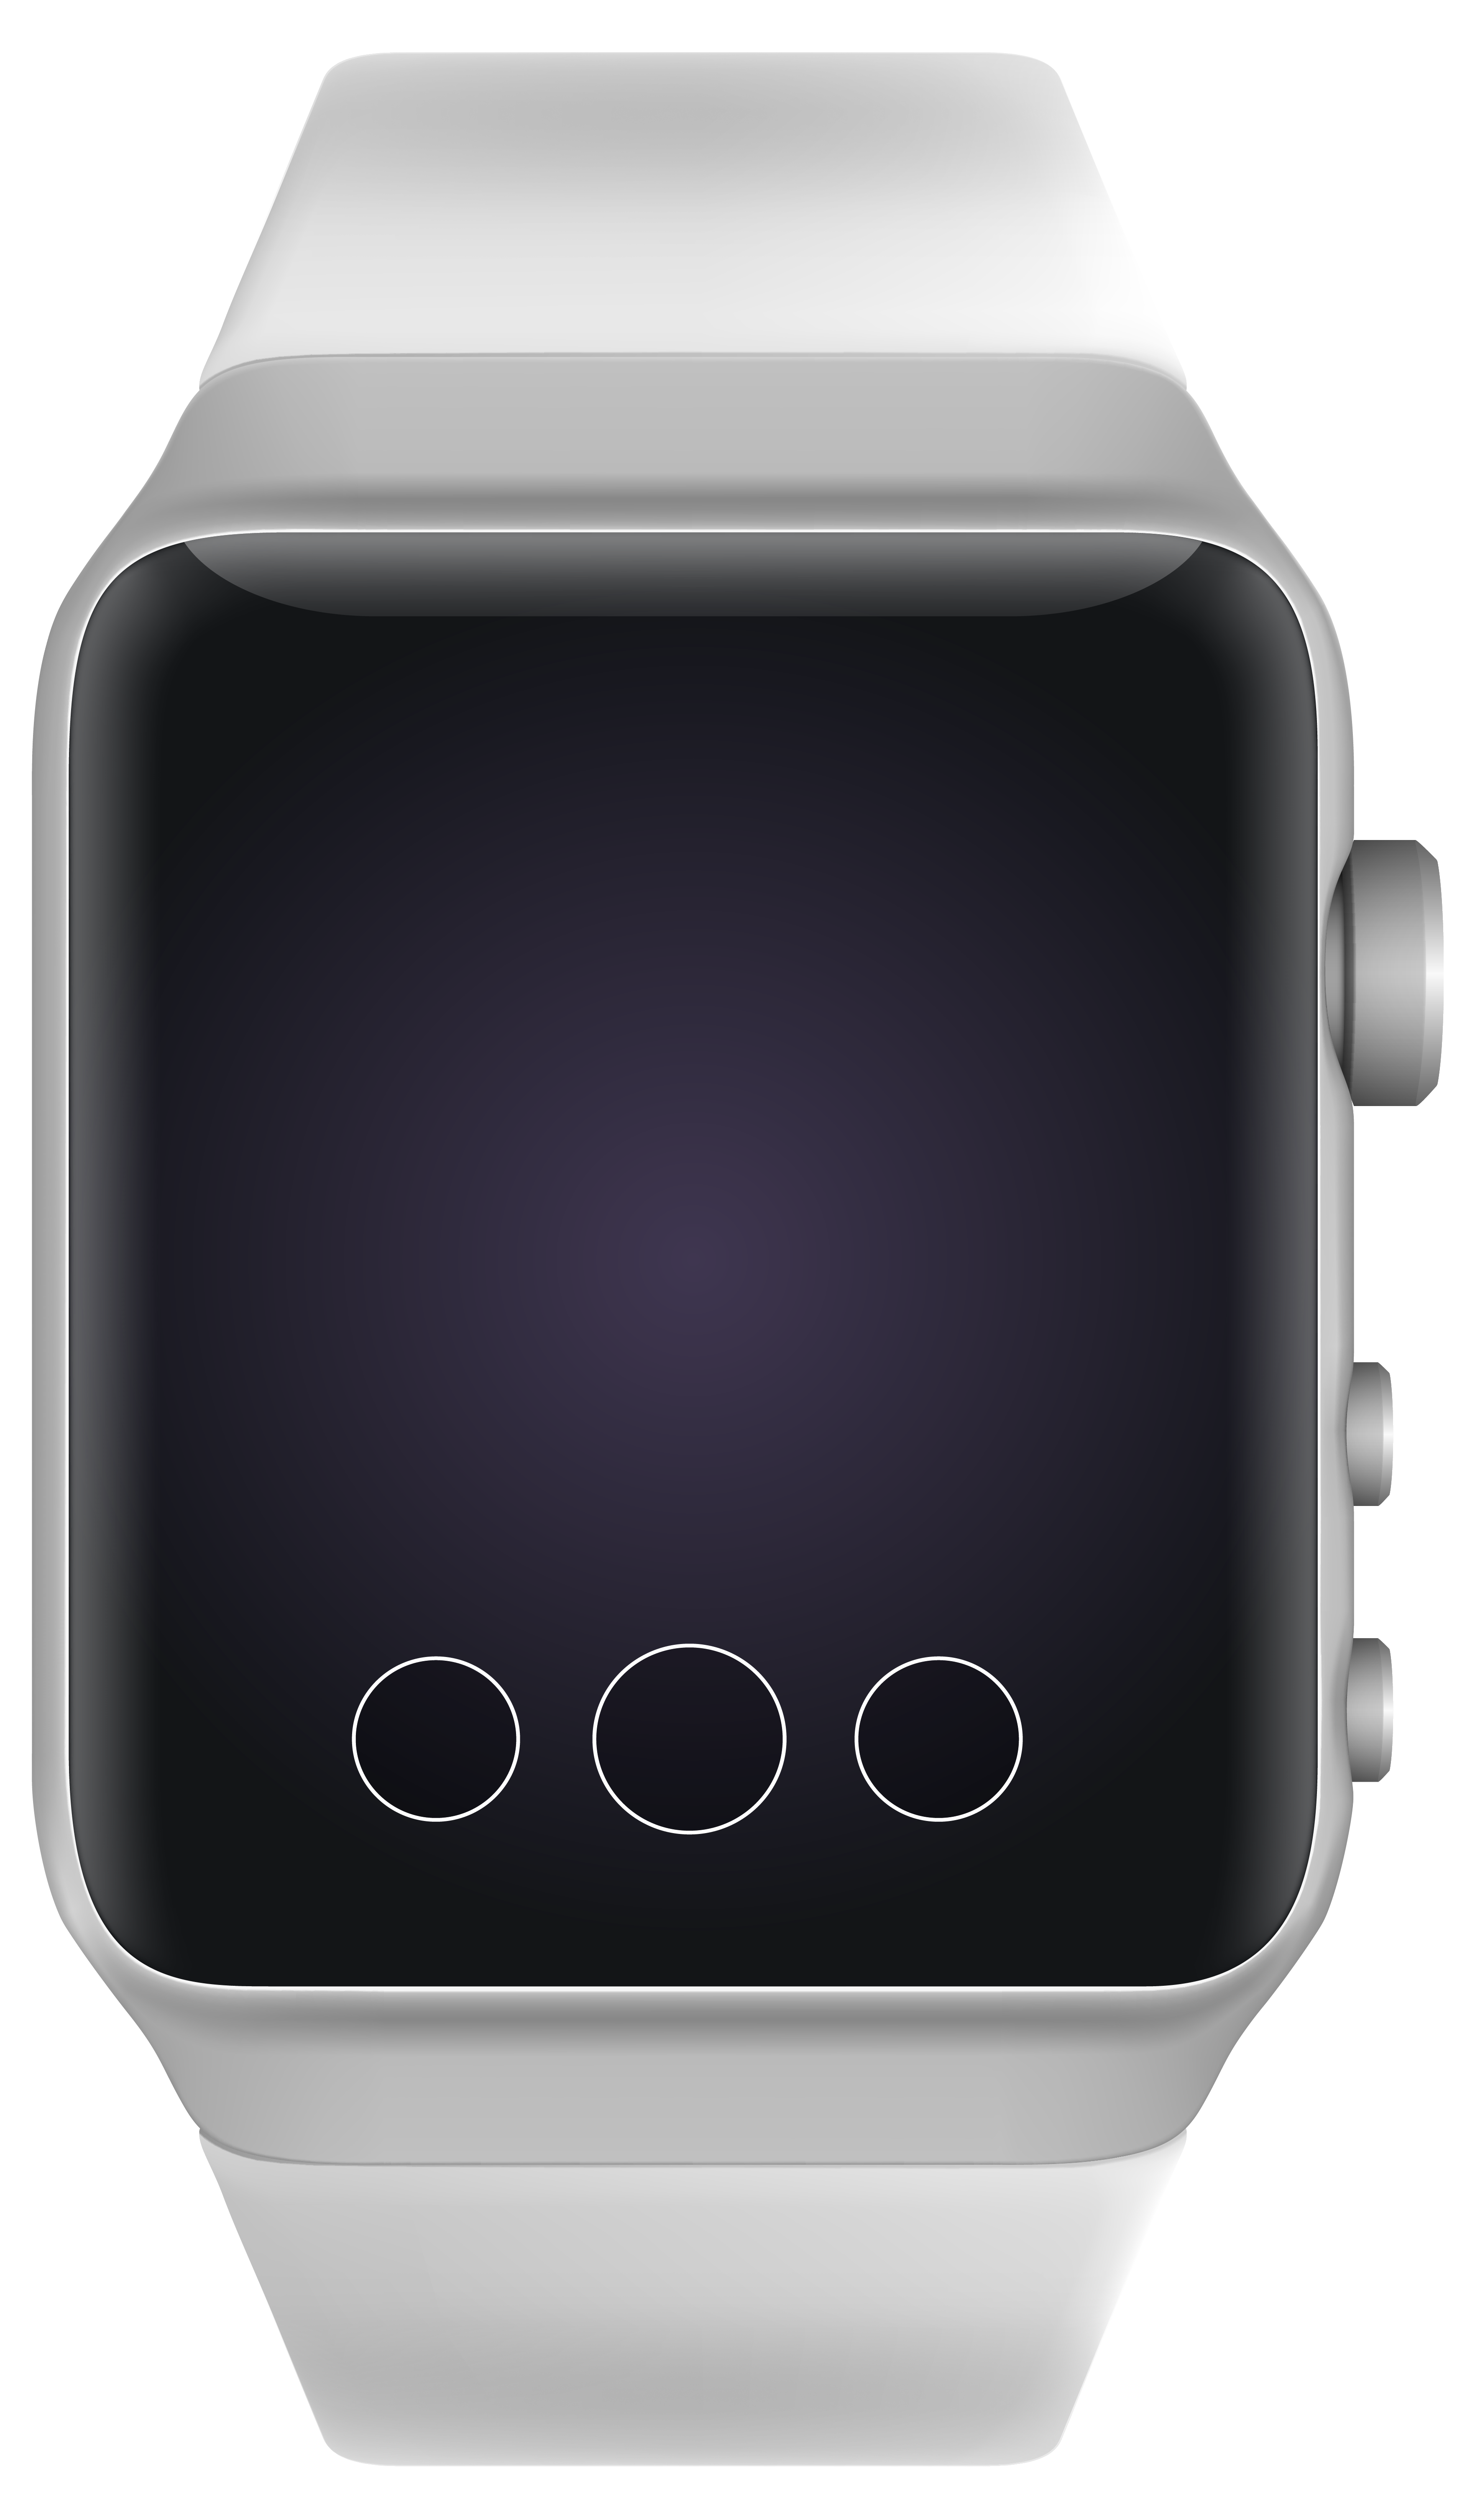 Smart watch clipart graphic black and white library Modern SmartWatch PNG Clipart - Best WEB Clipart graphic black and white library